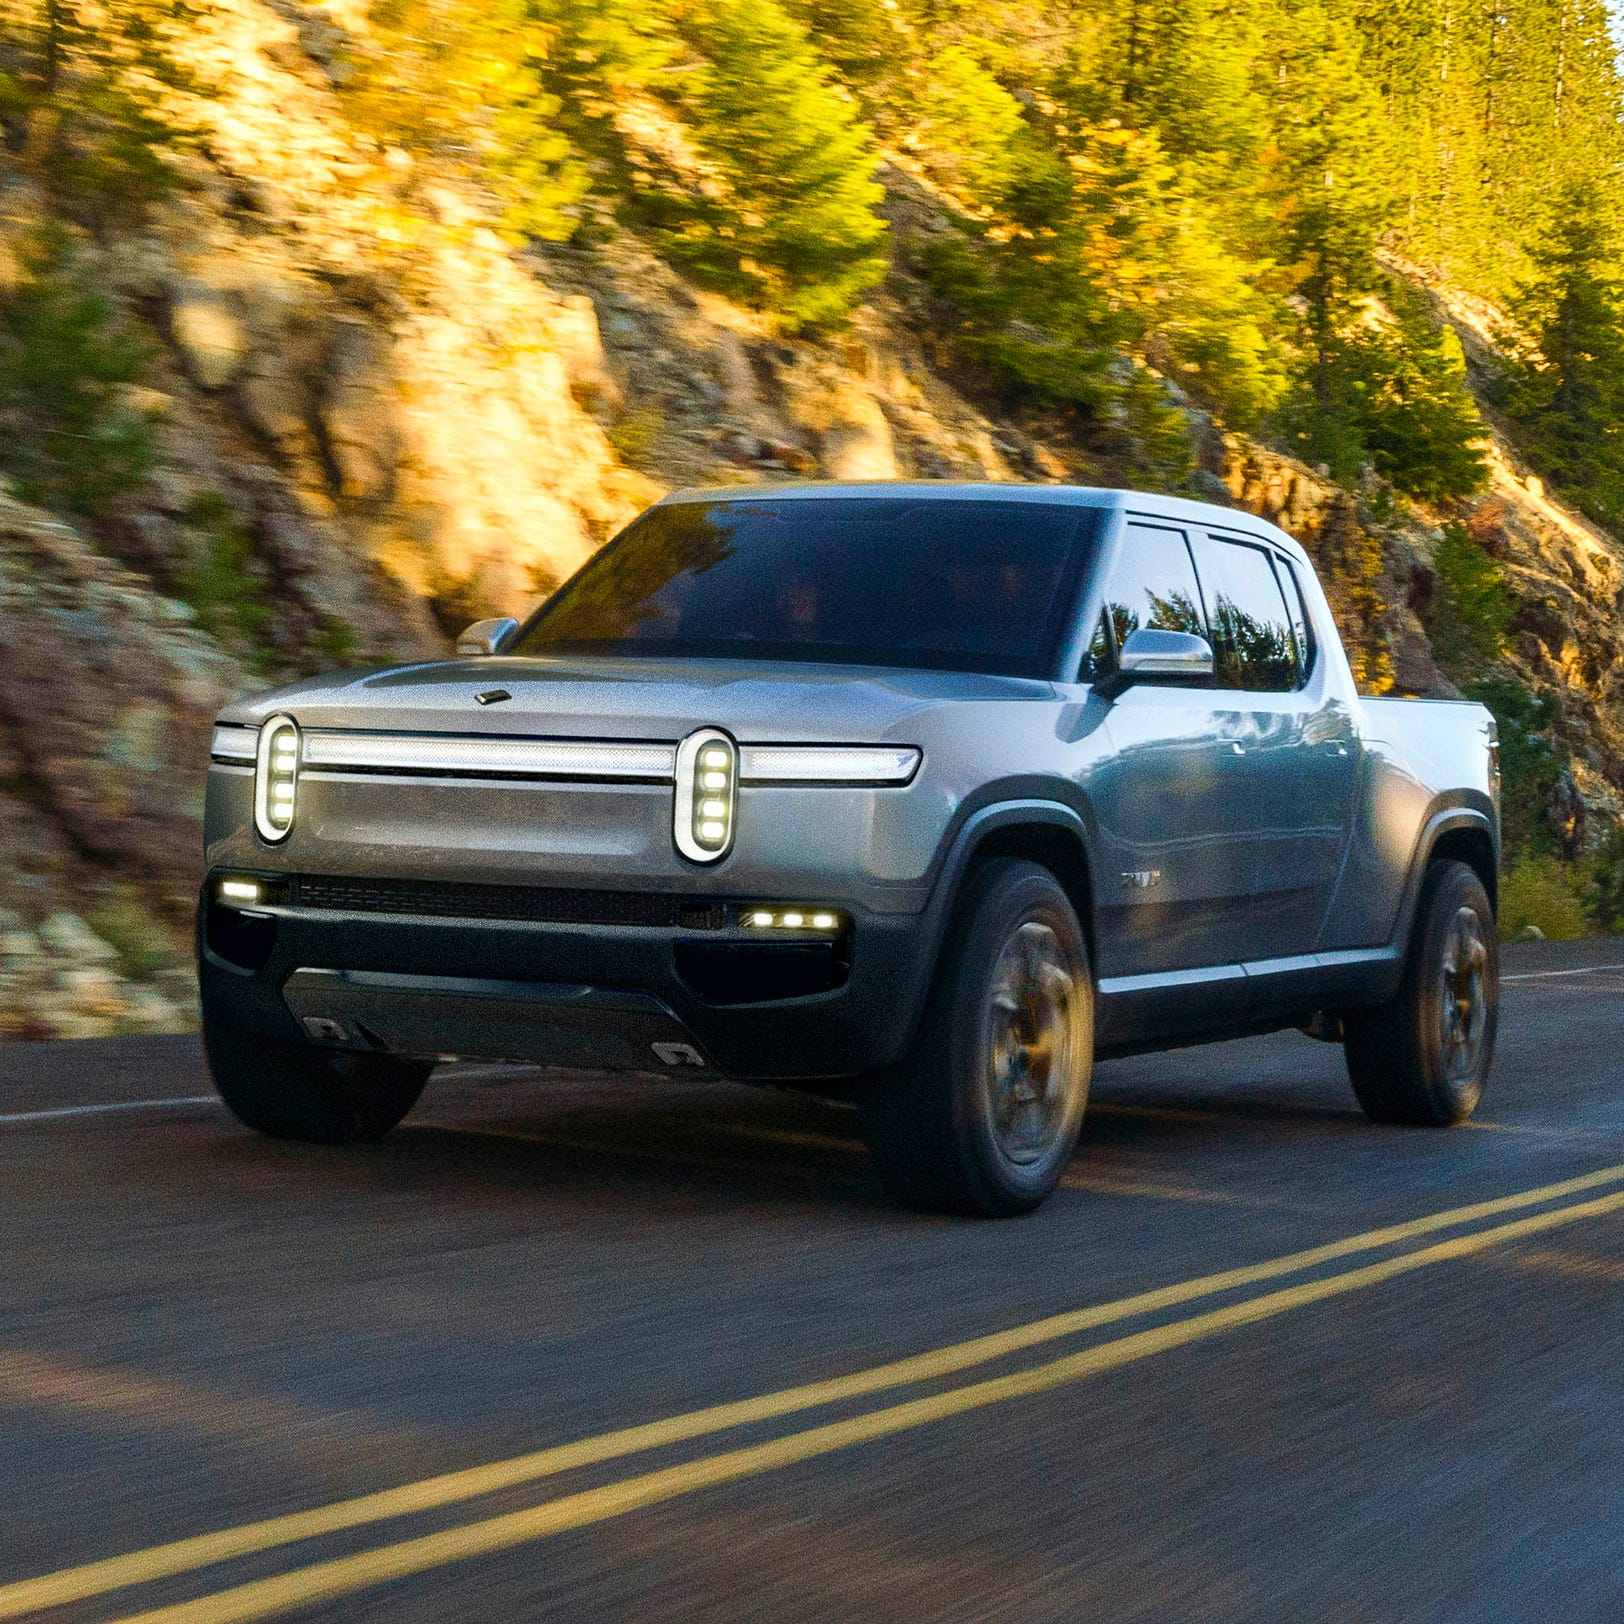 Report: Rivian won't give GM what it wants, talks break down